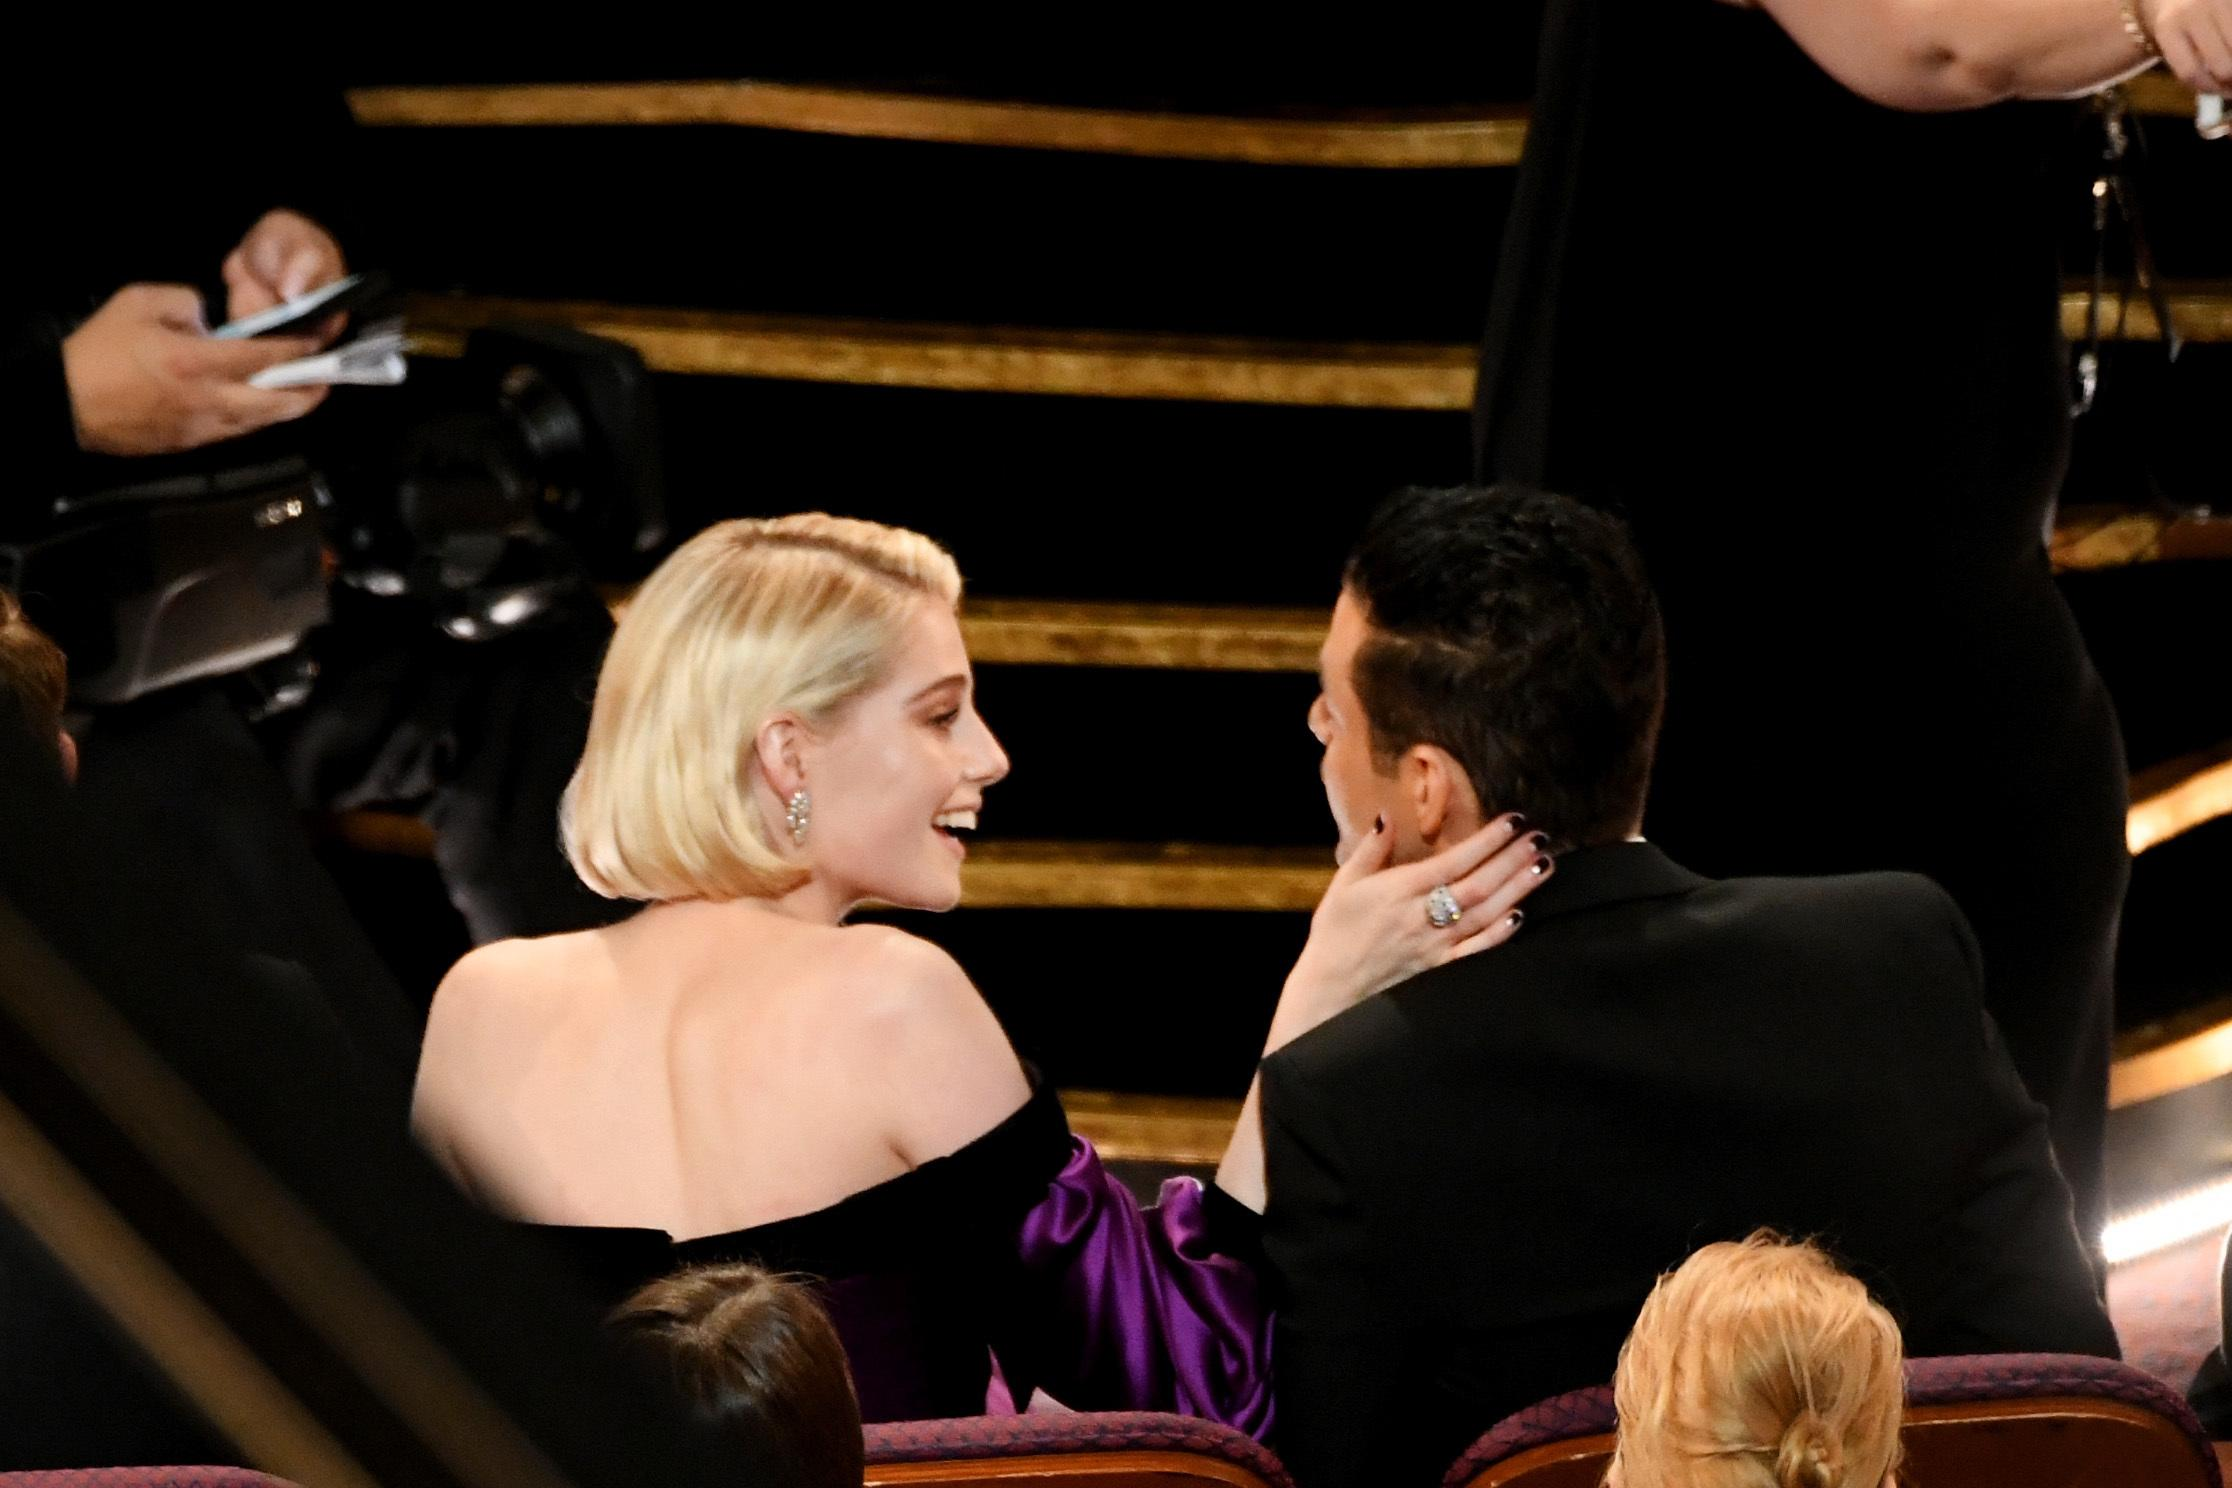 HOLLYWOOD, CALIFORNIA - FEBRUARY 24: (L-R) Lucy Boynton and Rami Malek during the 91st Annual Academy Awards at Dolby Theatre on February 24, 2019 in Hollywood, California. (Photo by Kevin Winter/Getty Images)